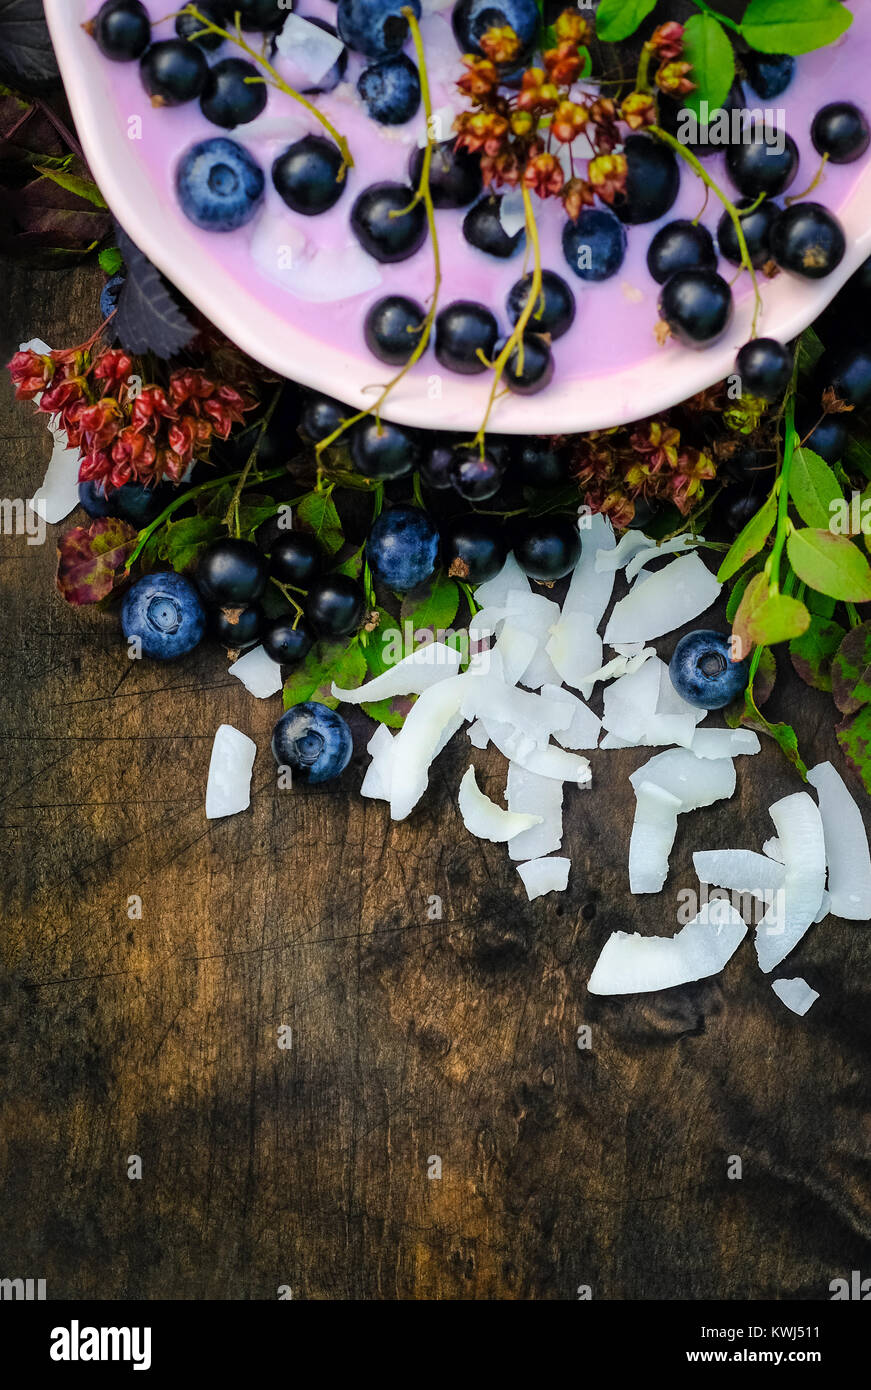 Vitamins for a day of healthy breakfast berry  yogurt, coconut chips and fresh blueberries and black currants - Stock Image